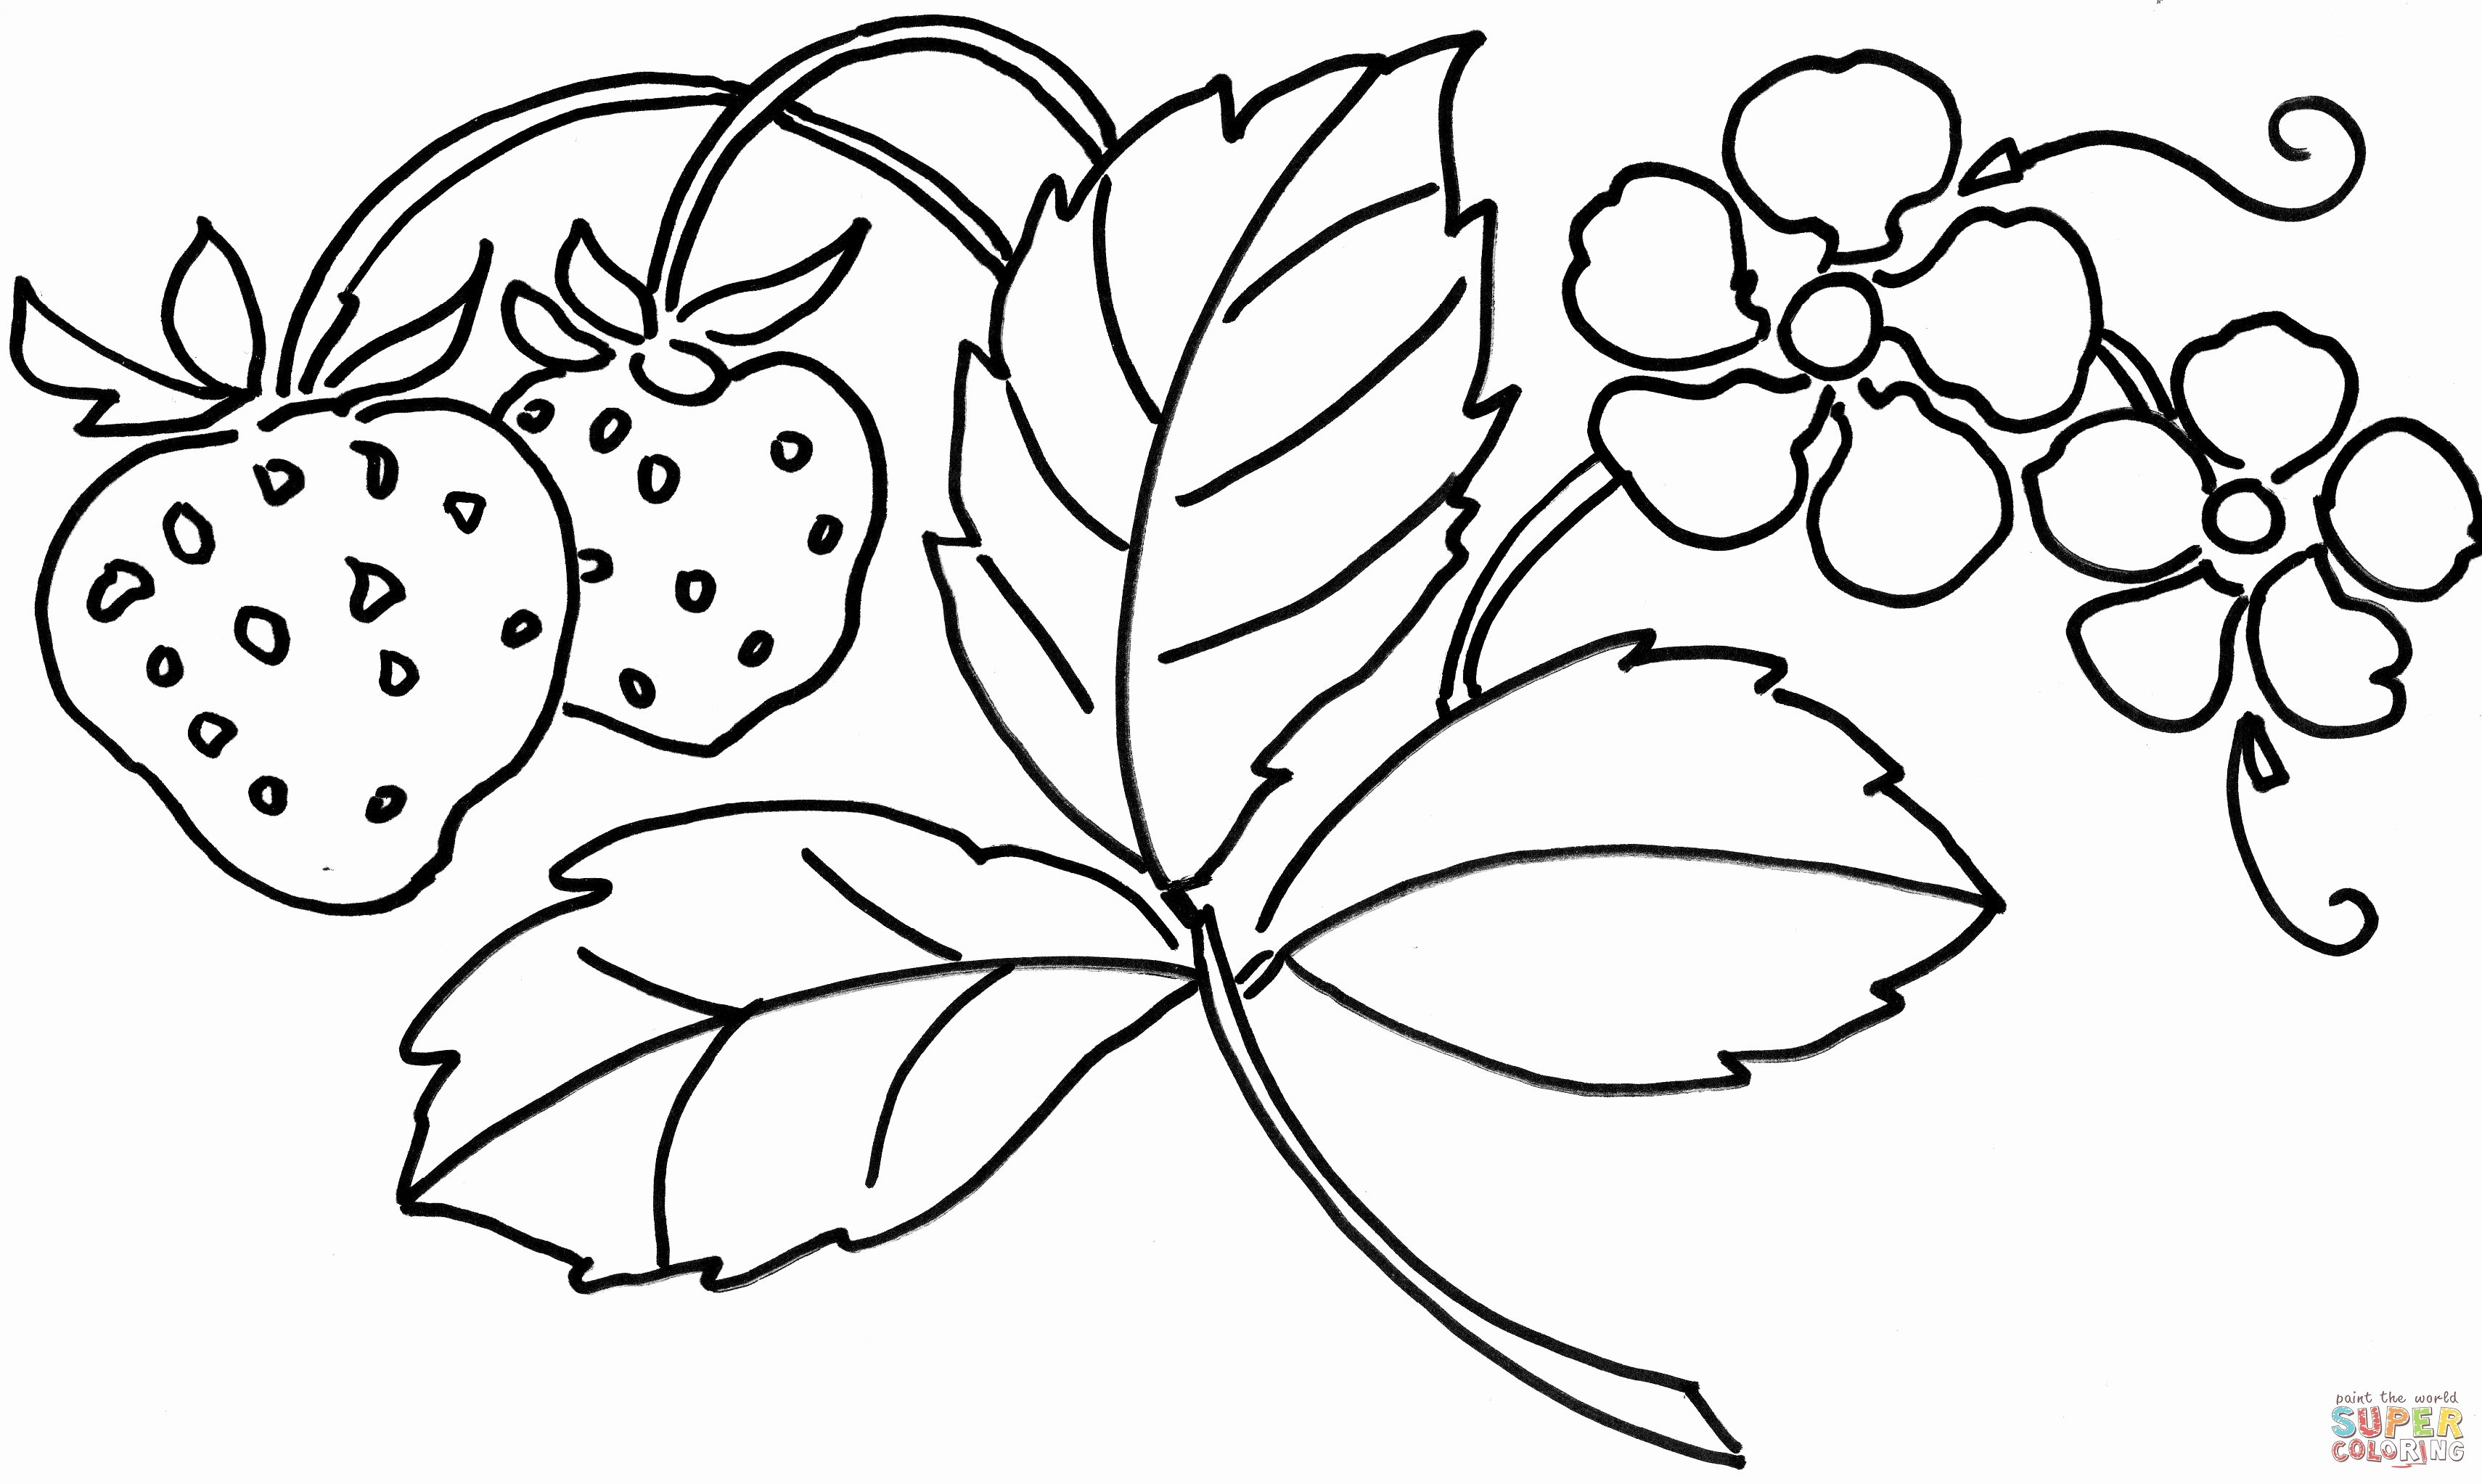 green flower vase of new coloring pages flowers awesome vases flower vase coloring page for new coloring pages flowers awesome vases flower vase coloring page pages